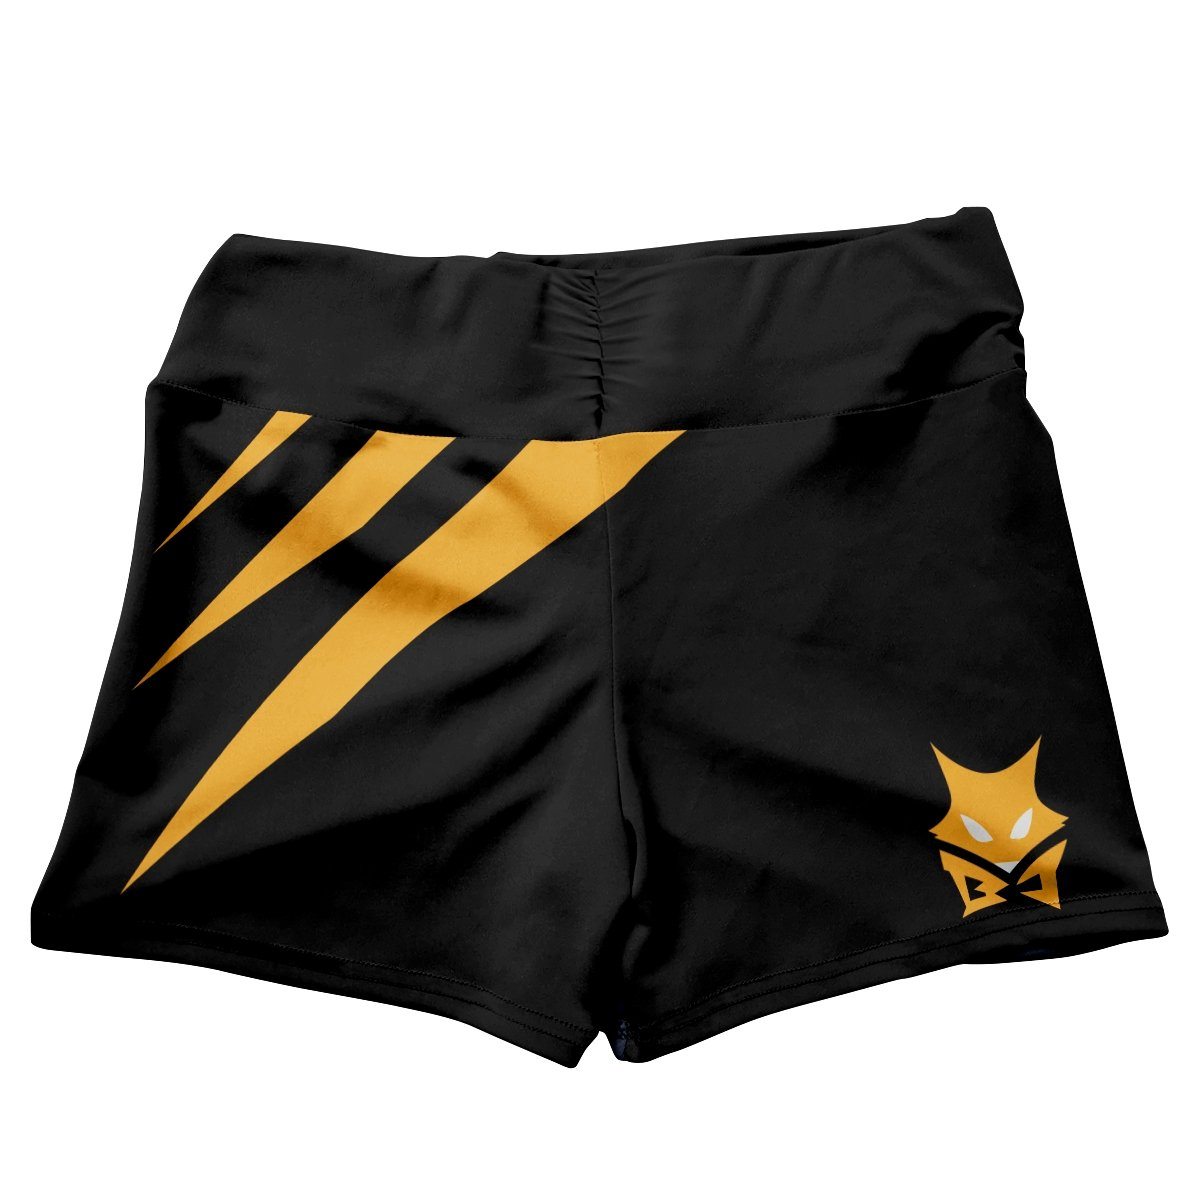 team msby black jackals active wear set 279434 - Anime Swimsuits